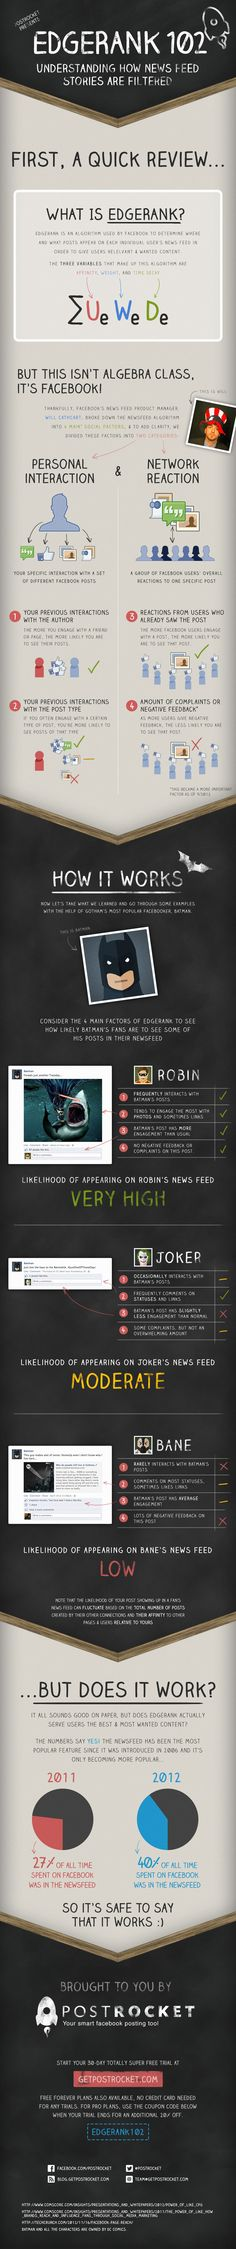 how Facebook EdgeRank works Infographic - whose updates Batman sees?